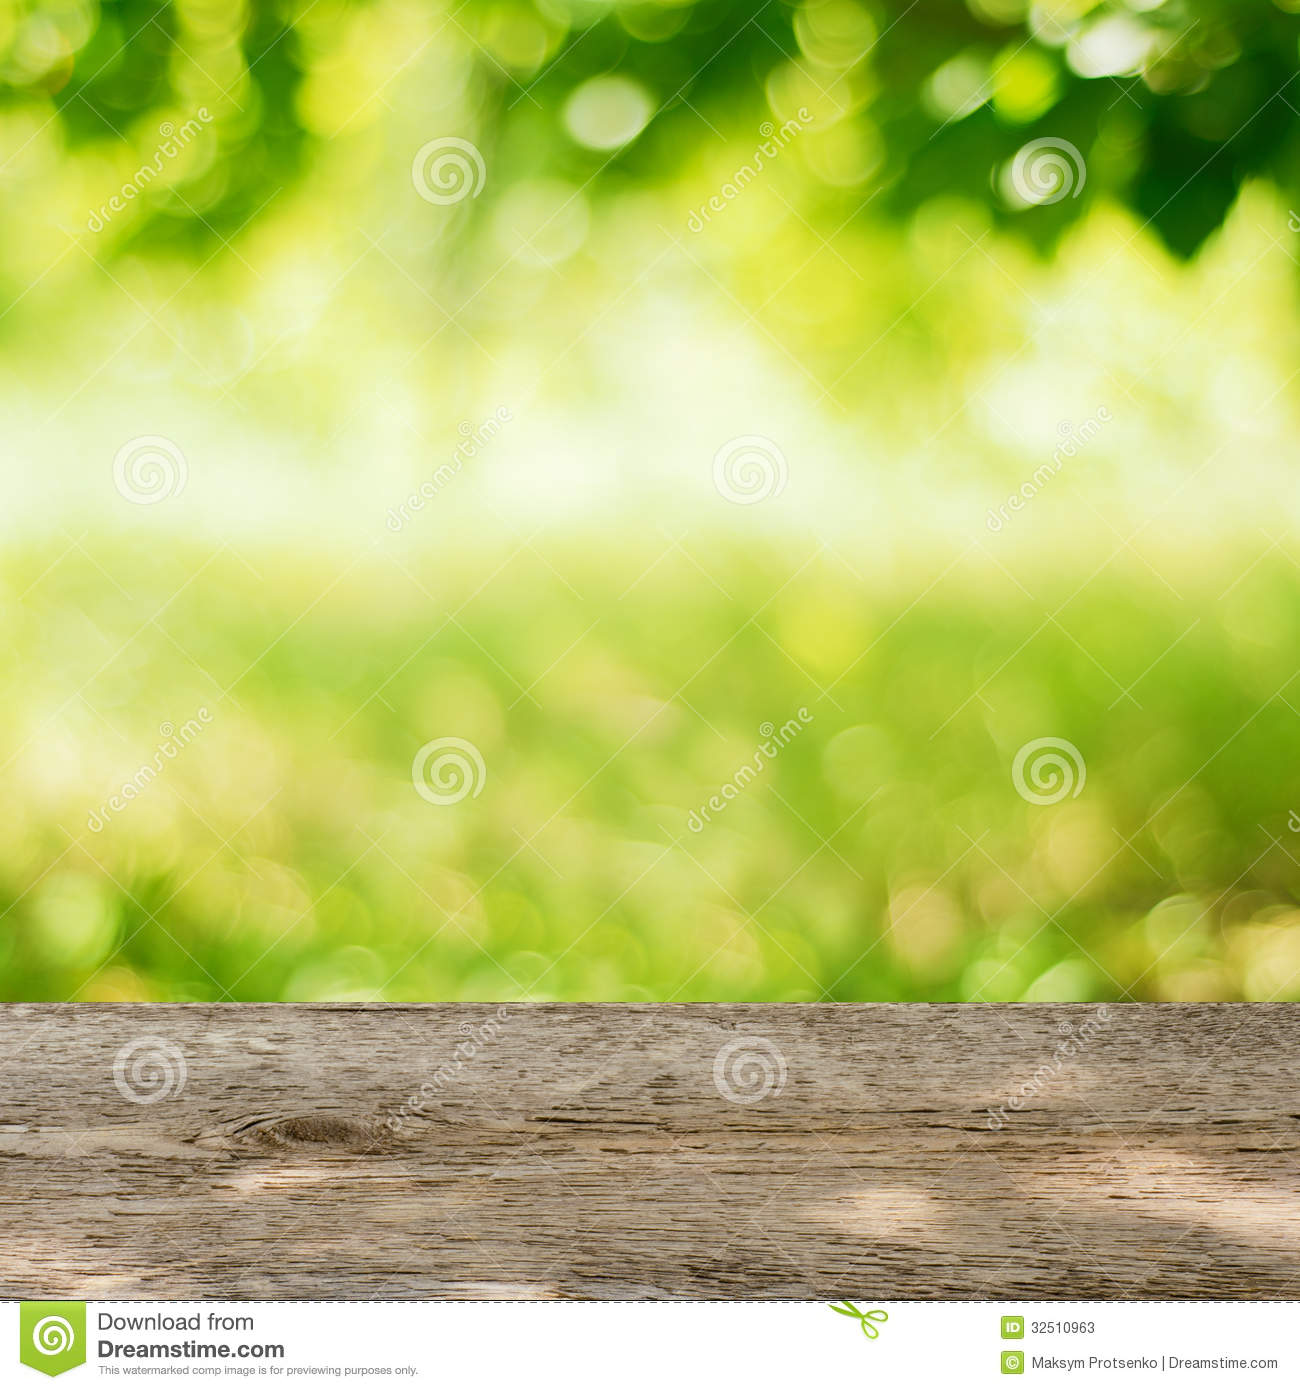 Stock Photos Empty Wooden Table Garden Bright Green Background Foliage Image32510963 as well Royalty Free Stock Images Construction Site Illustration Children Happy Colorful Image31739789 moreover Municipal Services likewise Wood Texture 1143636 likewise Sports Curricular Activities. on outdoor community message board